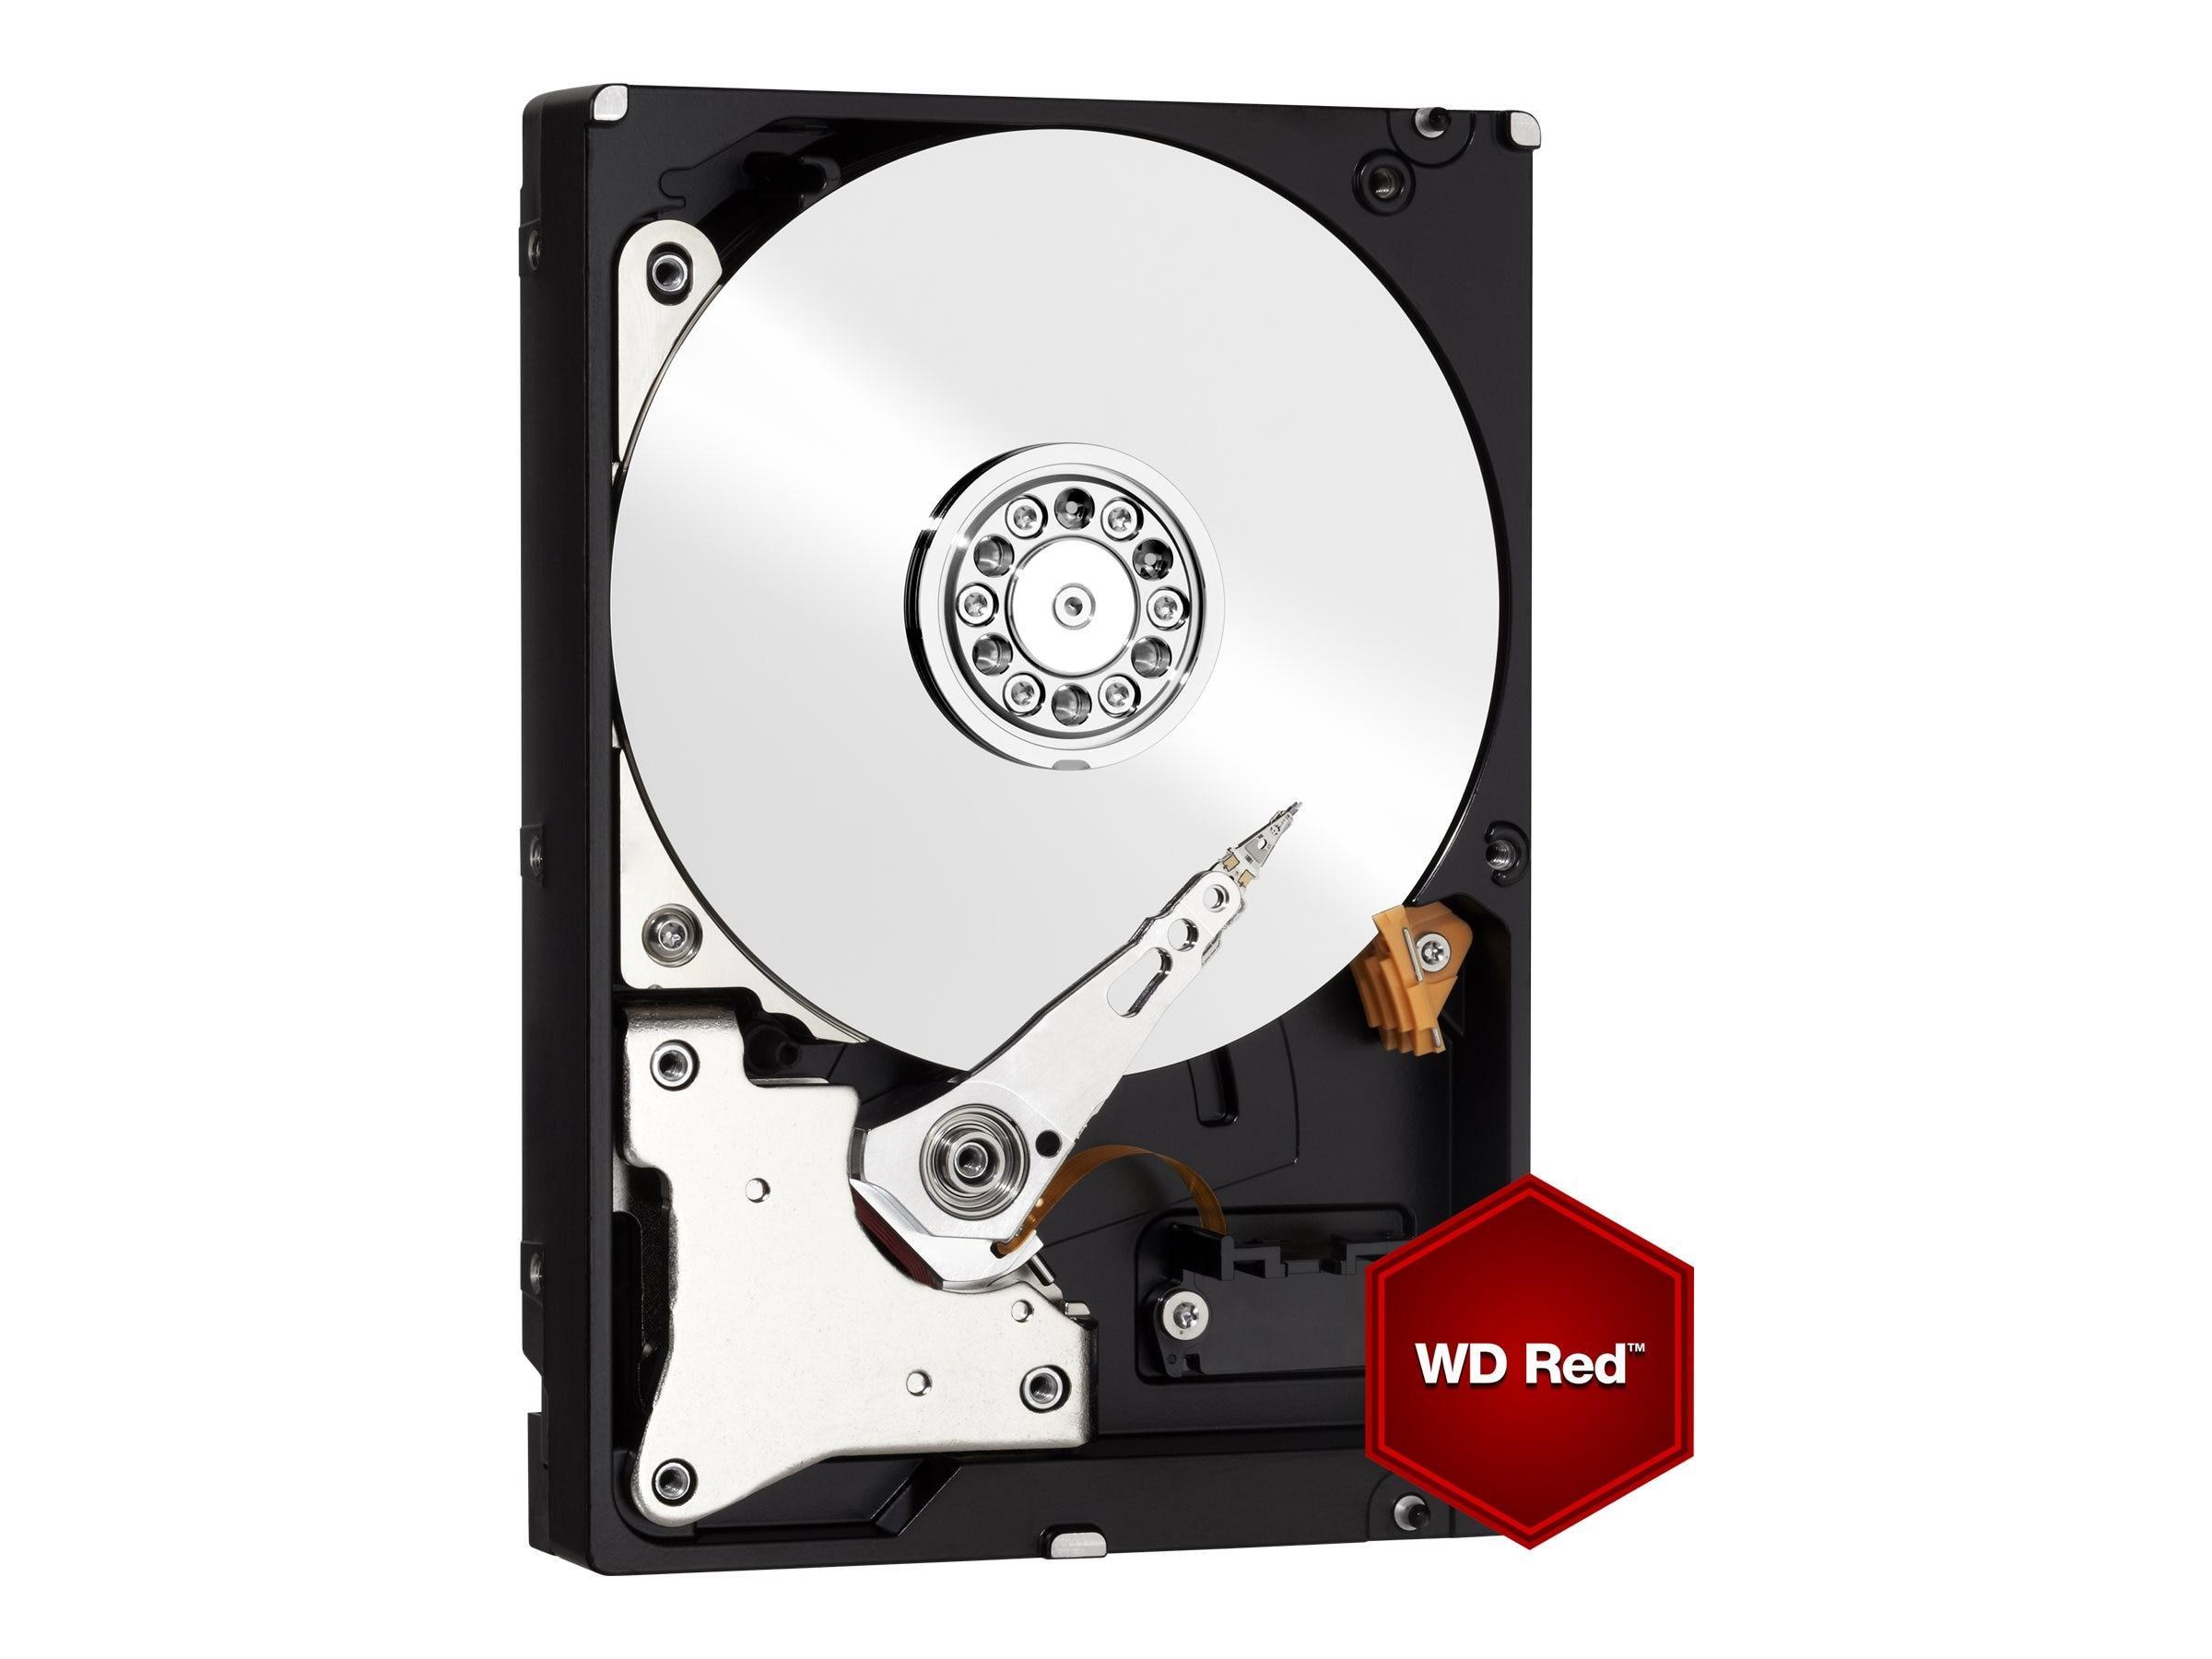 WD 3TB WD Red SATA 6Gb s 3.5 Internal NAS Hard Drive, WD30EFRX, 14515654, Hard Drives - Internal